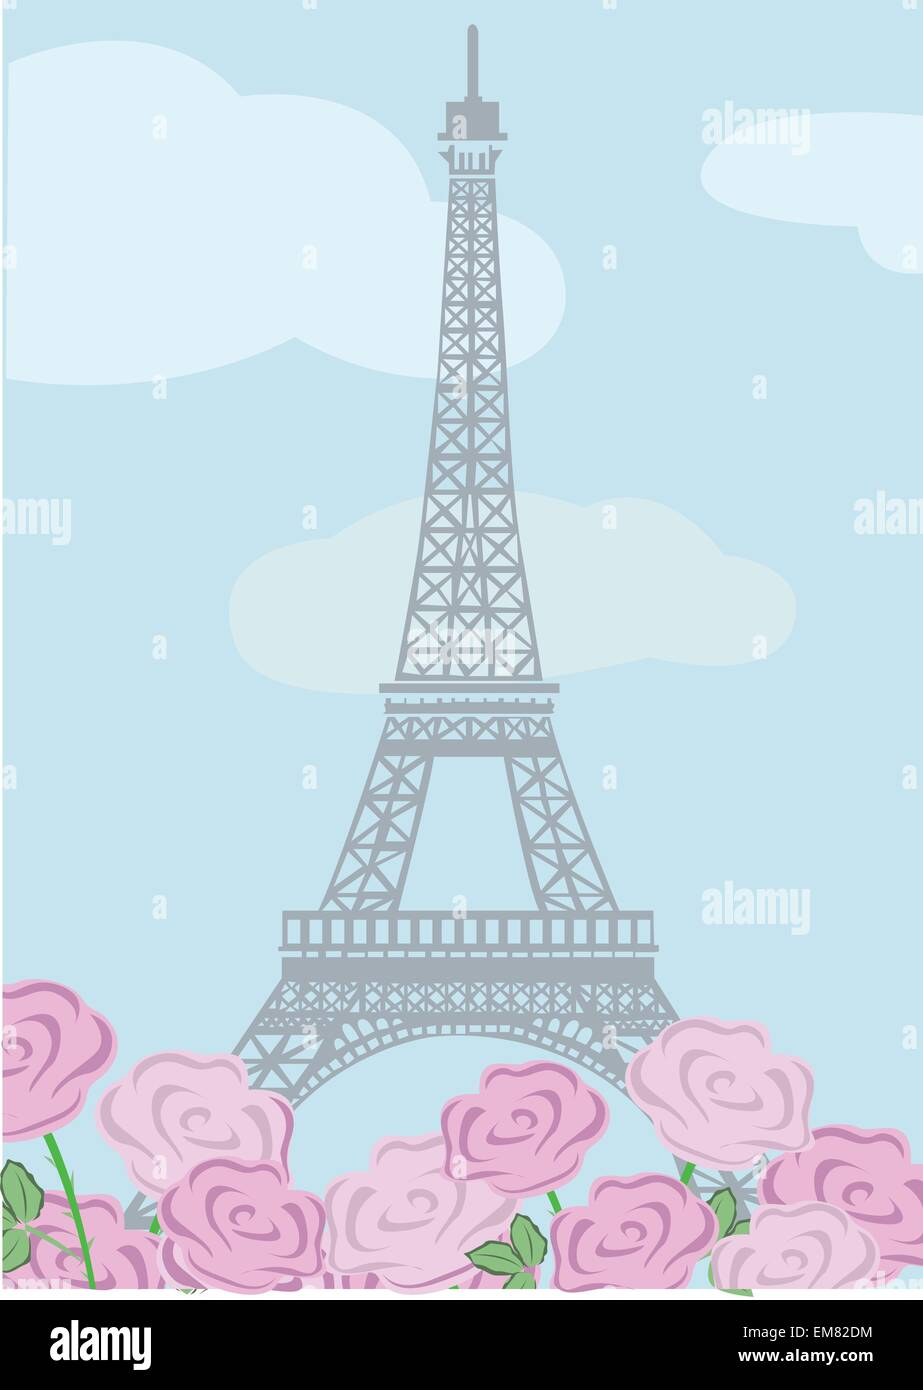 Eiffel tower with roses - Stock Vector